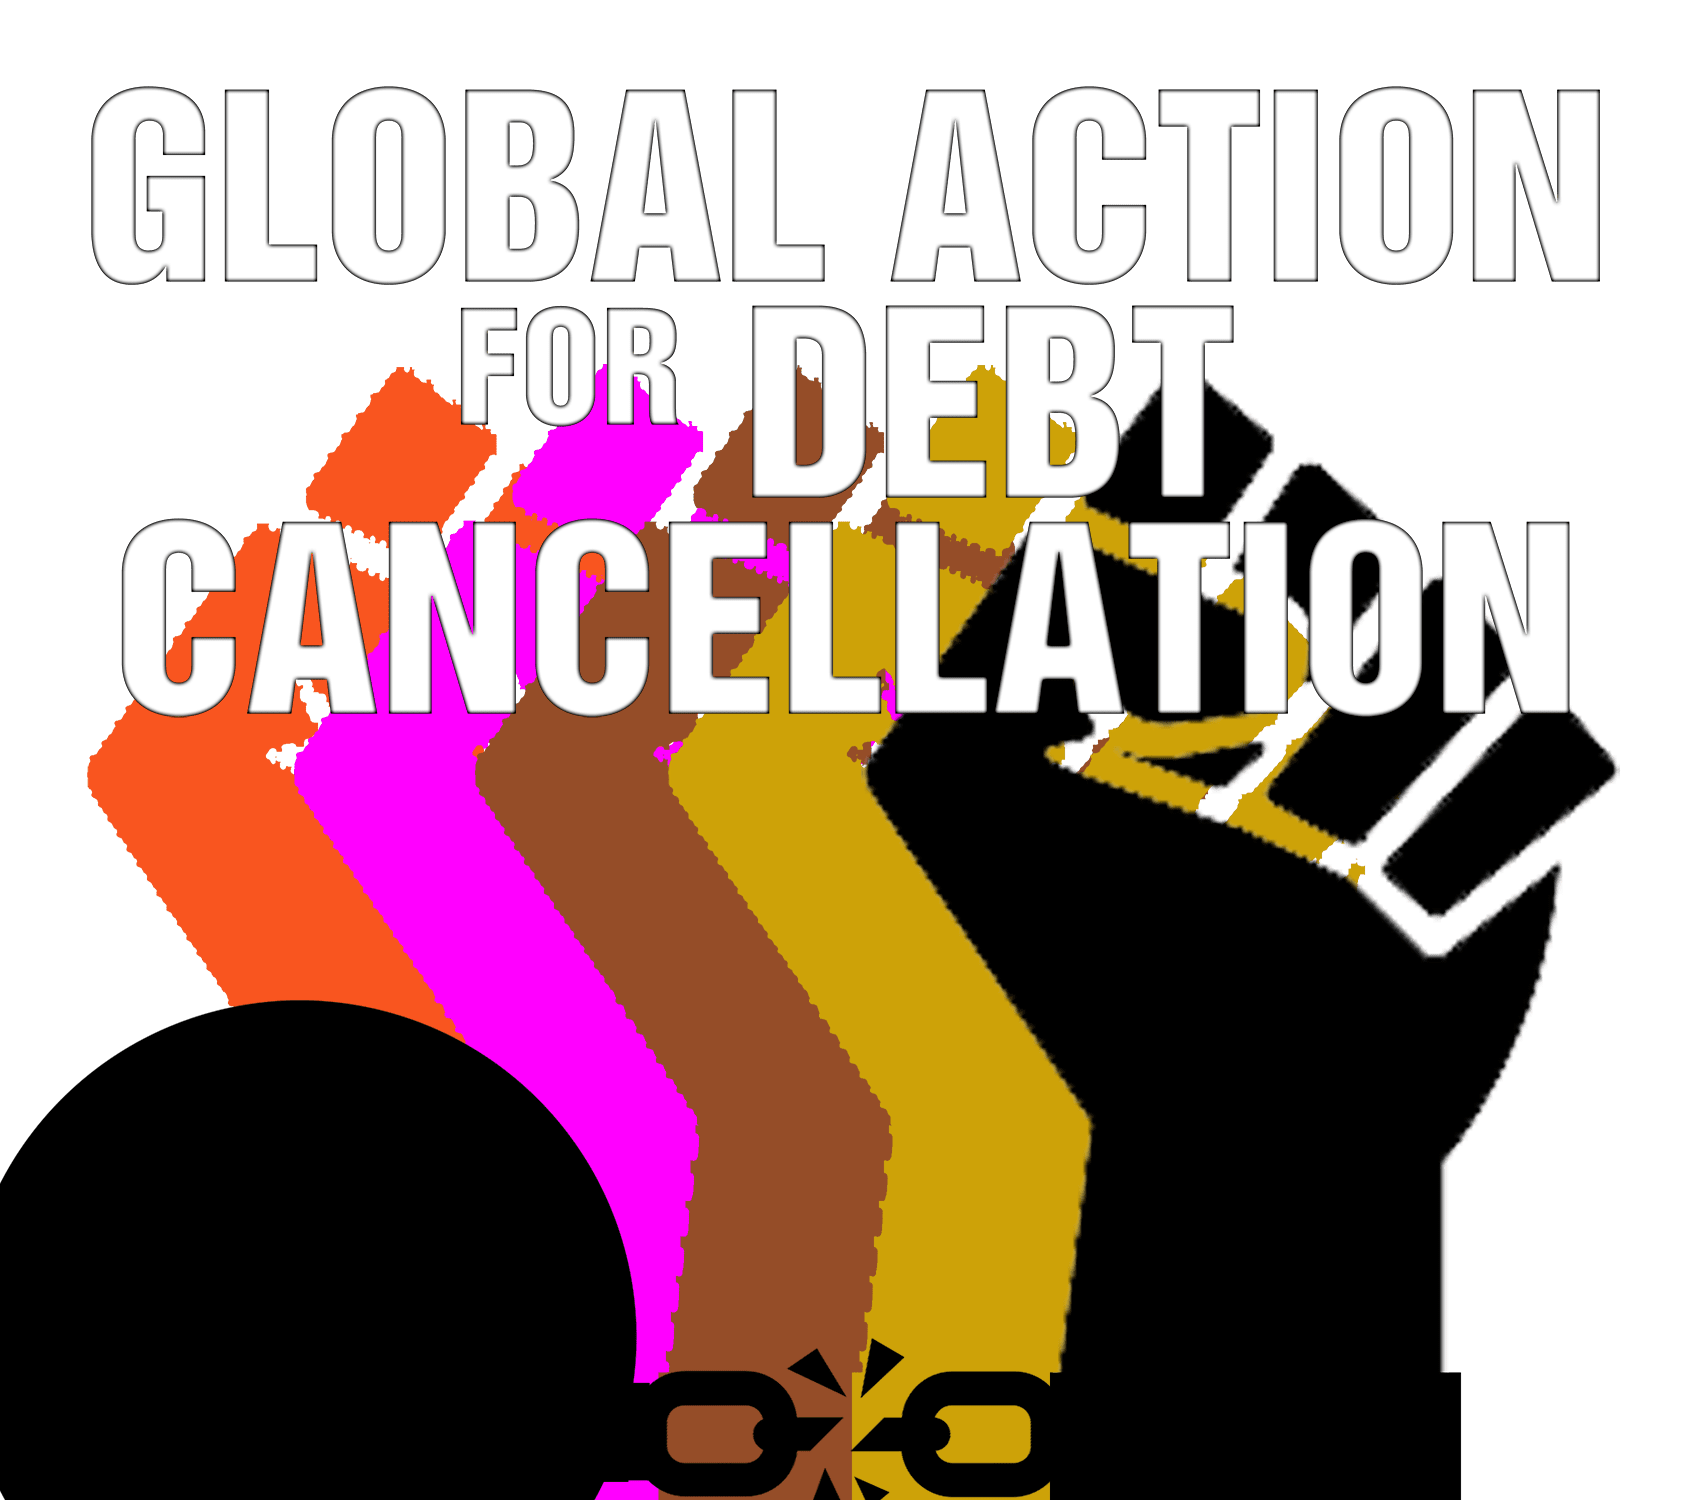 Global Action for Debt Cancellation